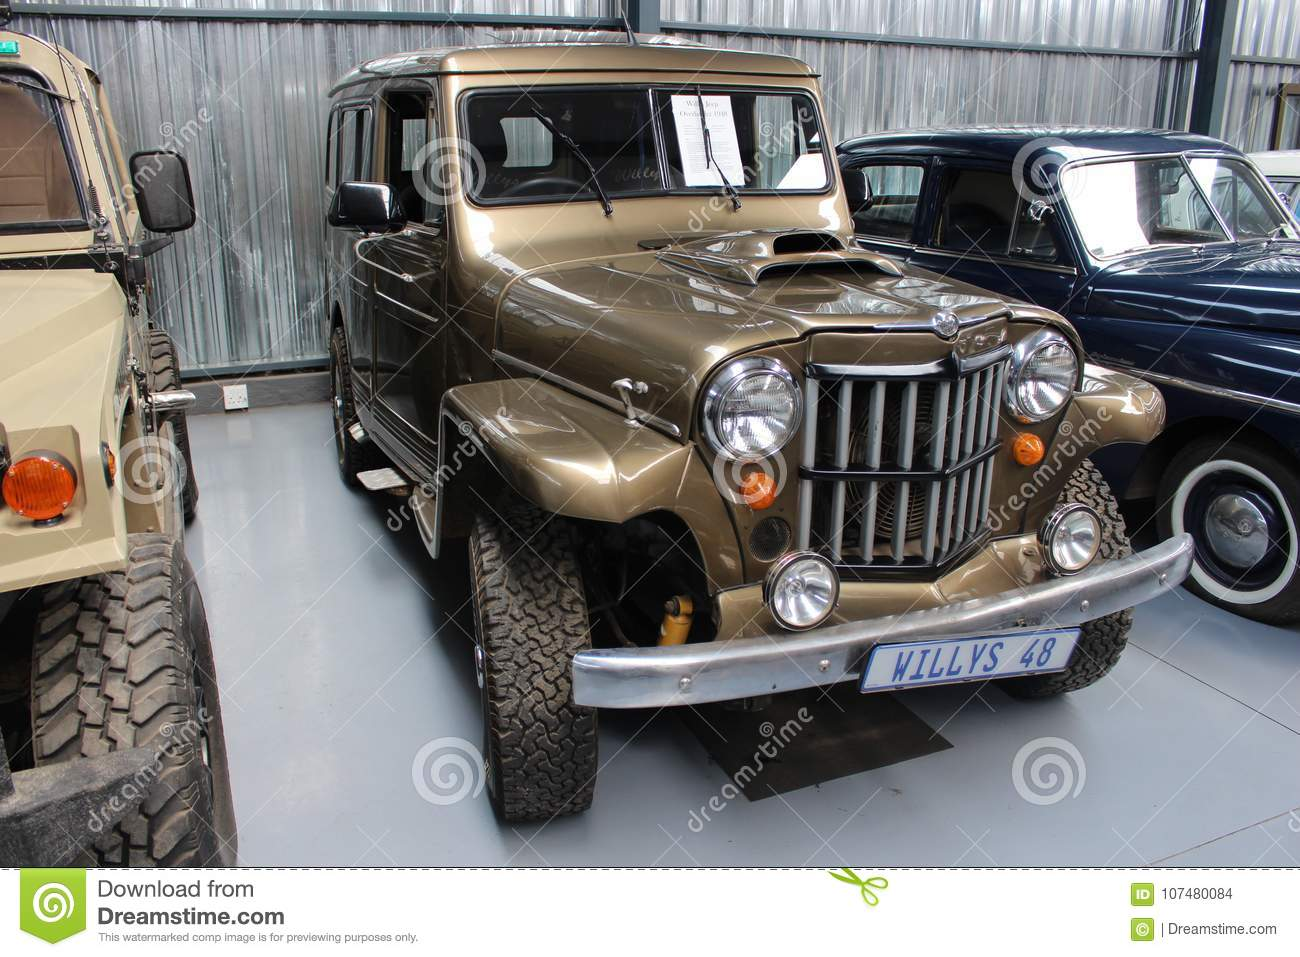 Classic cars editorial stock image. Image of classic - 107480084